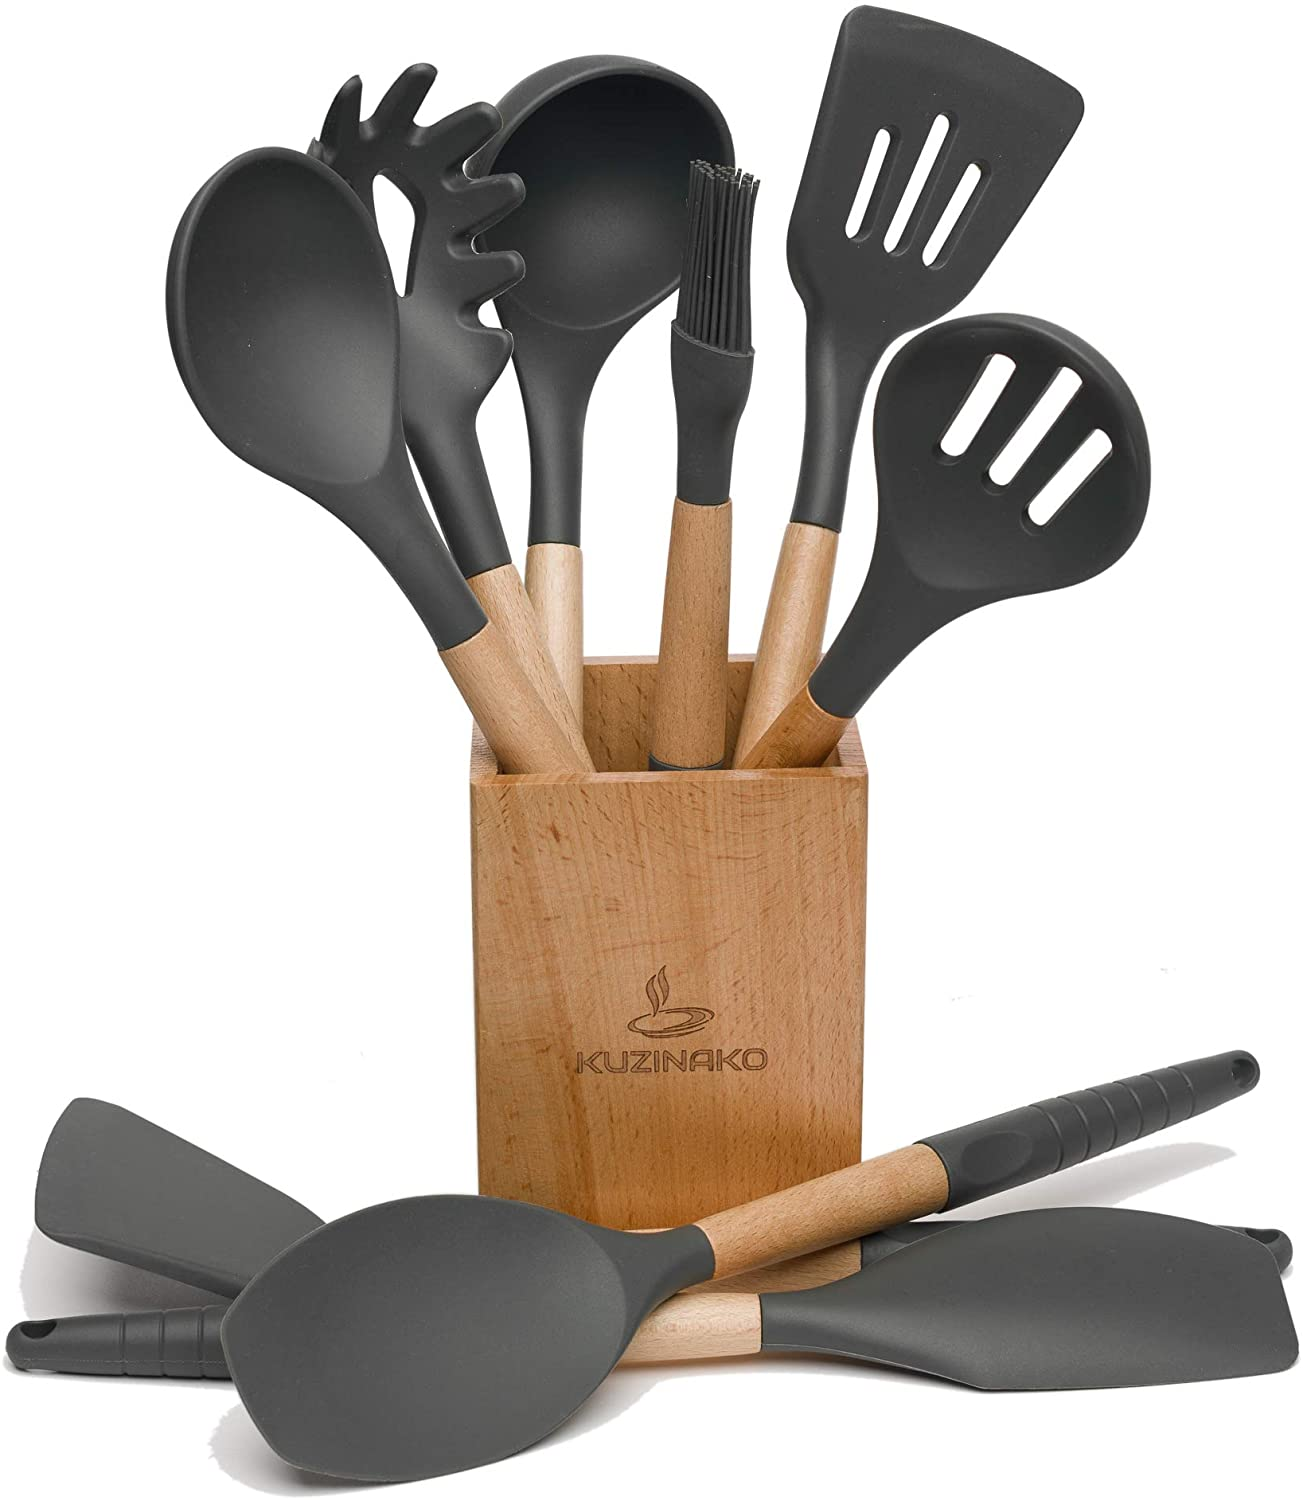 10PCS Kitchen Utensil Set with Holder for Non-stick Cookware Silicone Spatula Set with Kitchen Utensil Holder Silicone Kitchen Set Silicone Cooking Utensils for your Beautiful Kitchen (Grey)